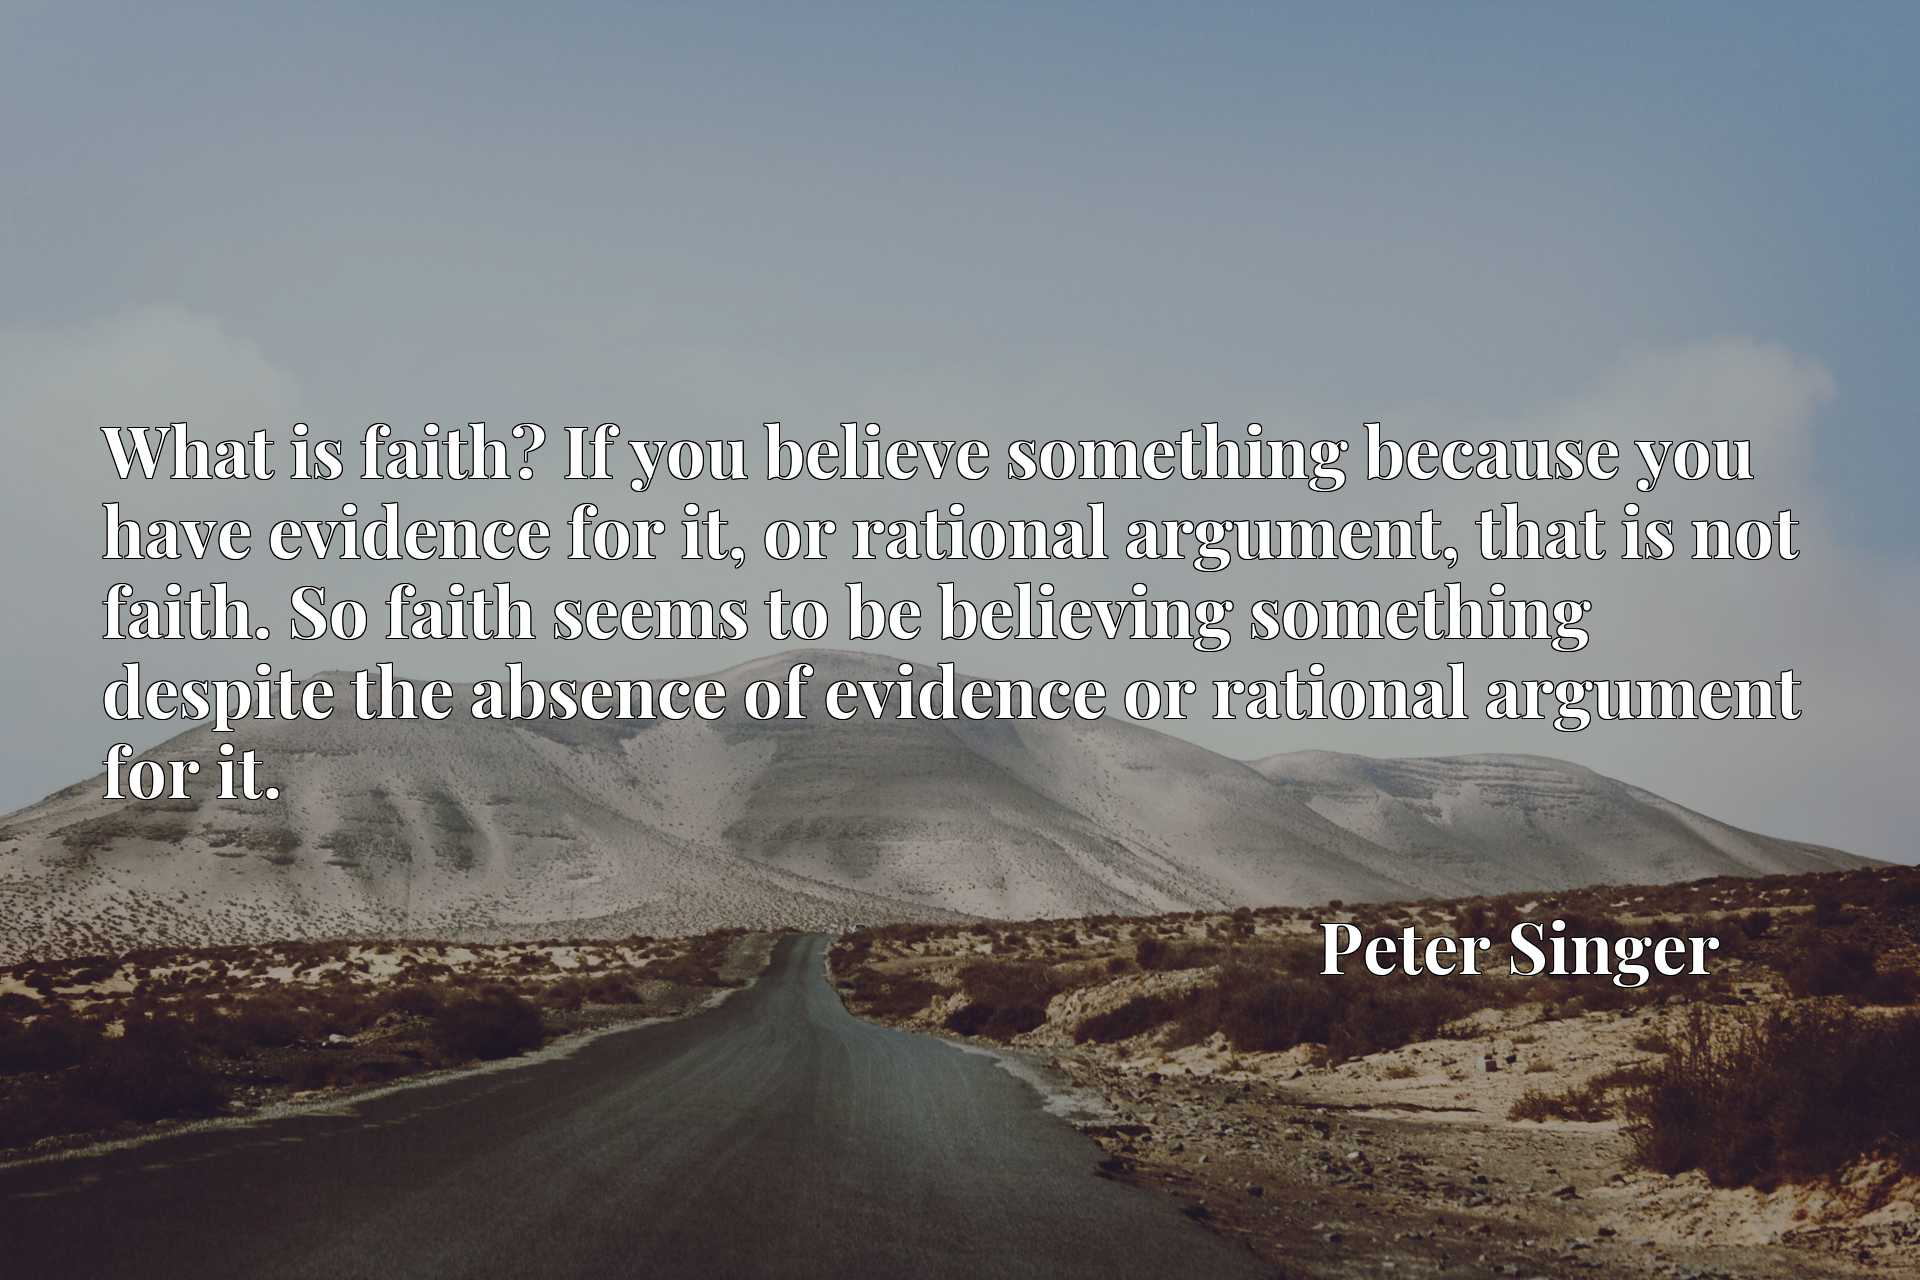 What is faith? If you believe something because you have evidence for it, or rational argument, that is not faith. So faith seems to be believing something despite the absence of evidence or rational argument for it.